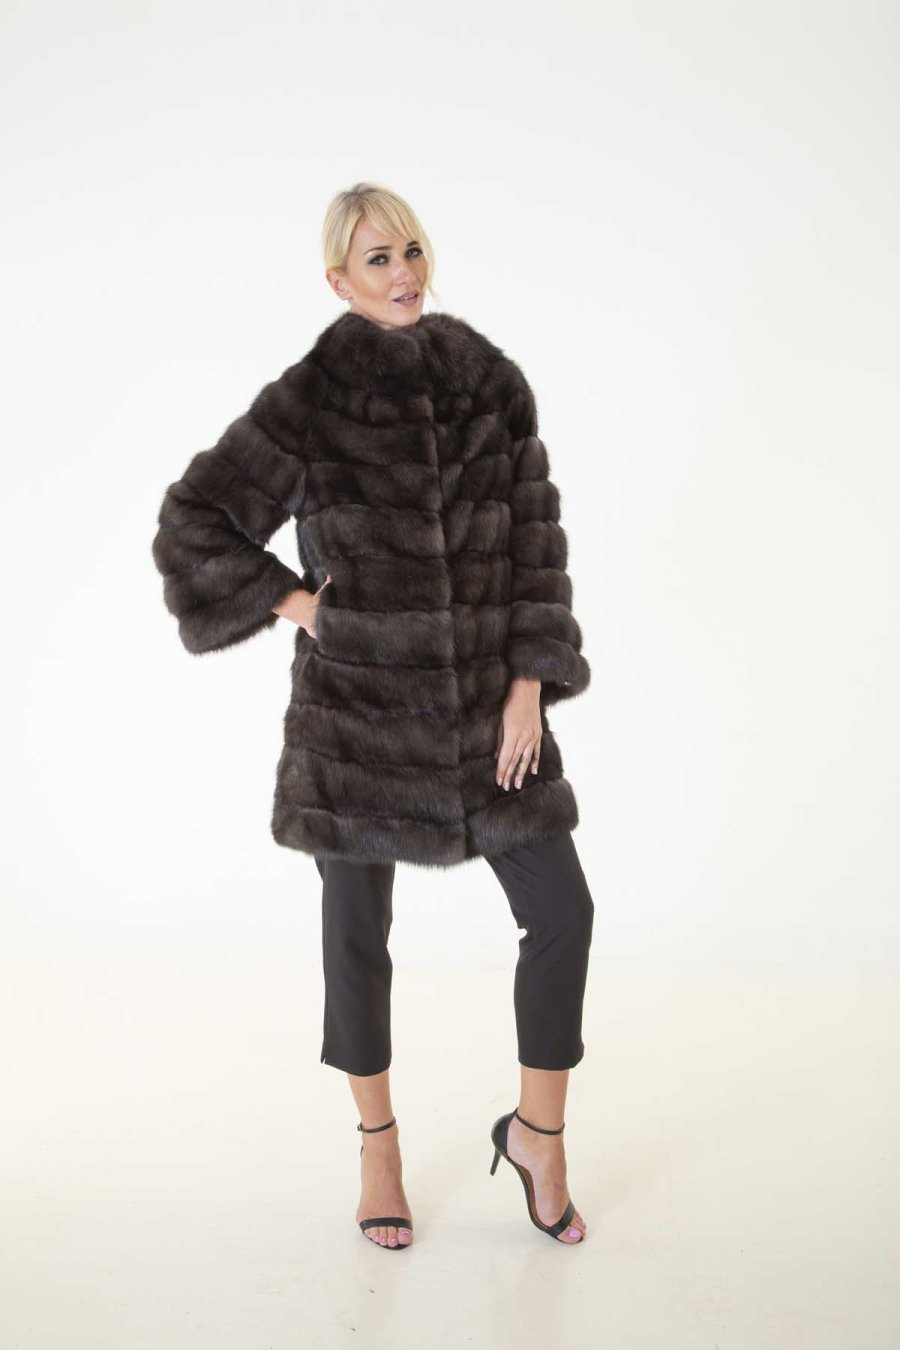 Barguzin Sable Fur Jacket | Sarigianni Furs